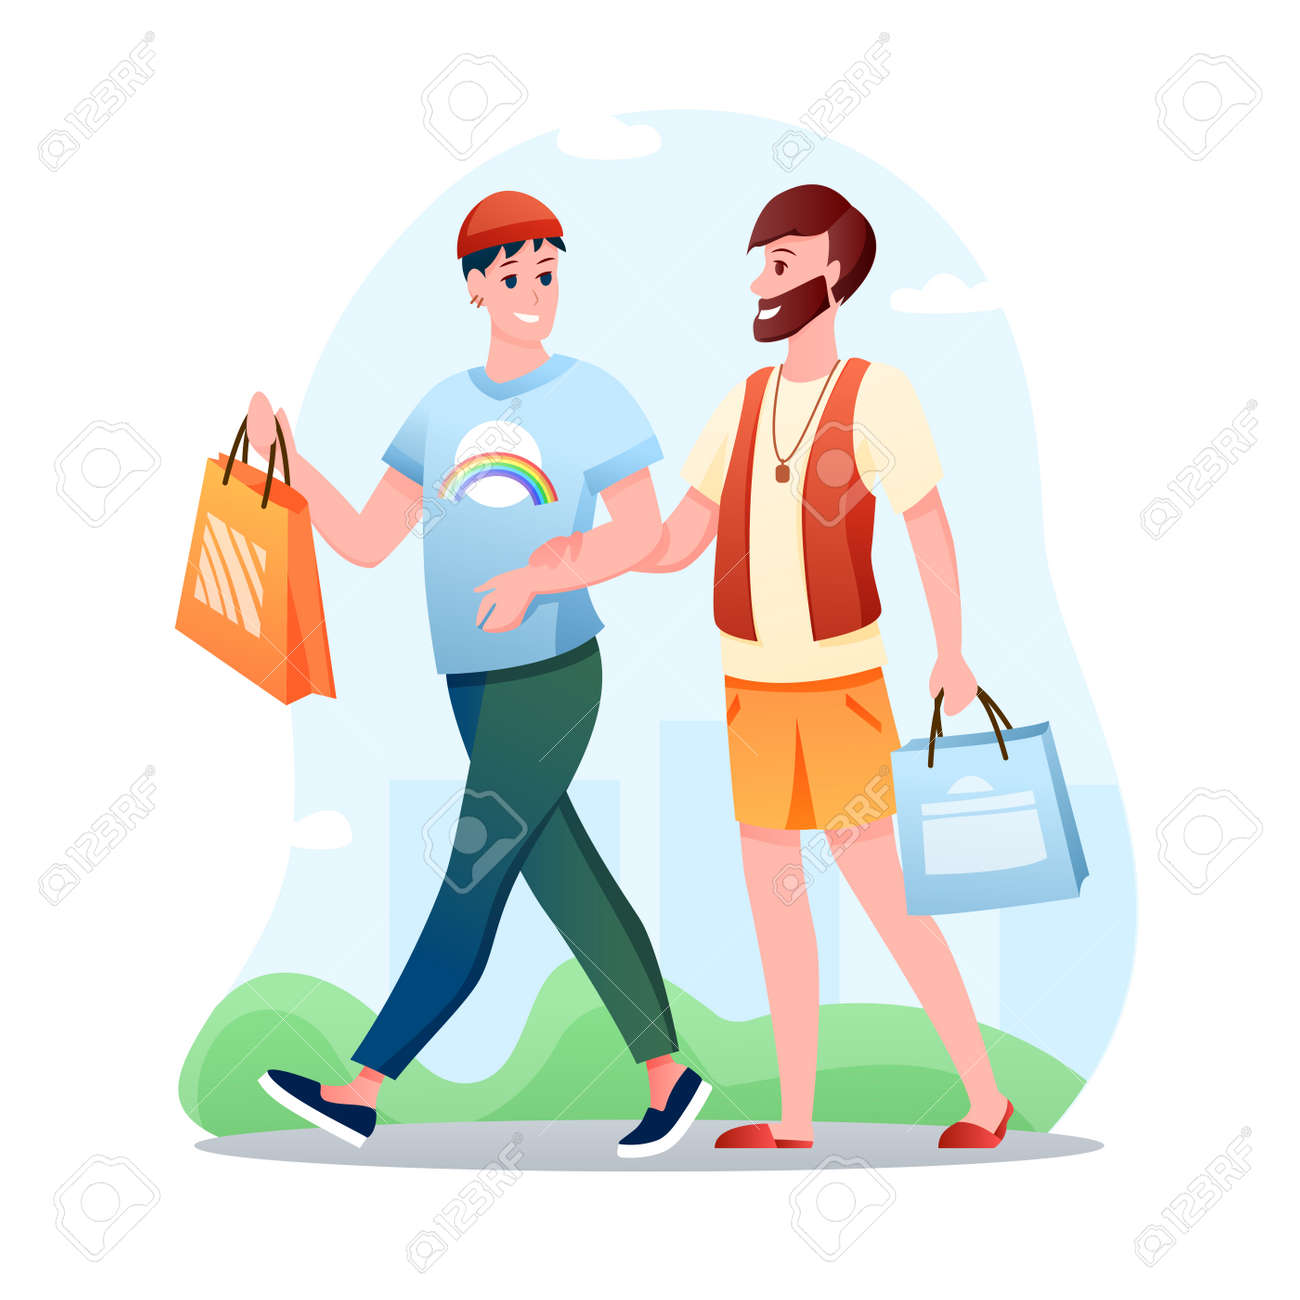 Gay couple LGBT love vector illustration. Cartoon flat happy man partner characters walking, lovers spend time together. Love, LGBT relationship, homosexuality concept isolated on white - 151954103